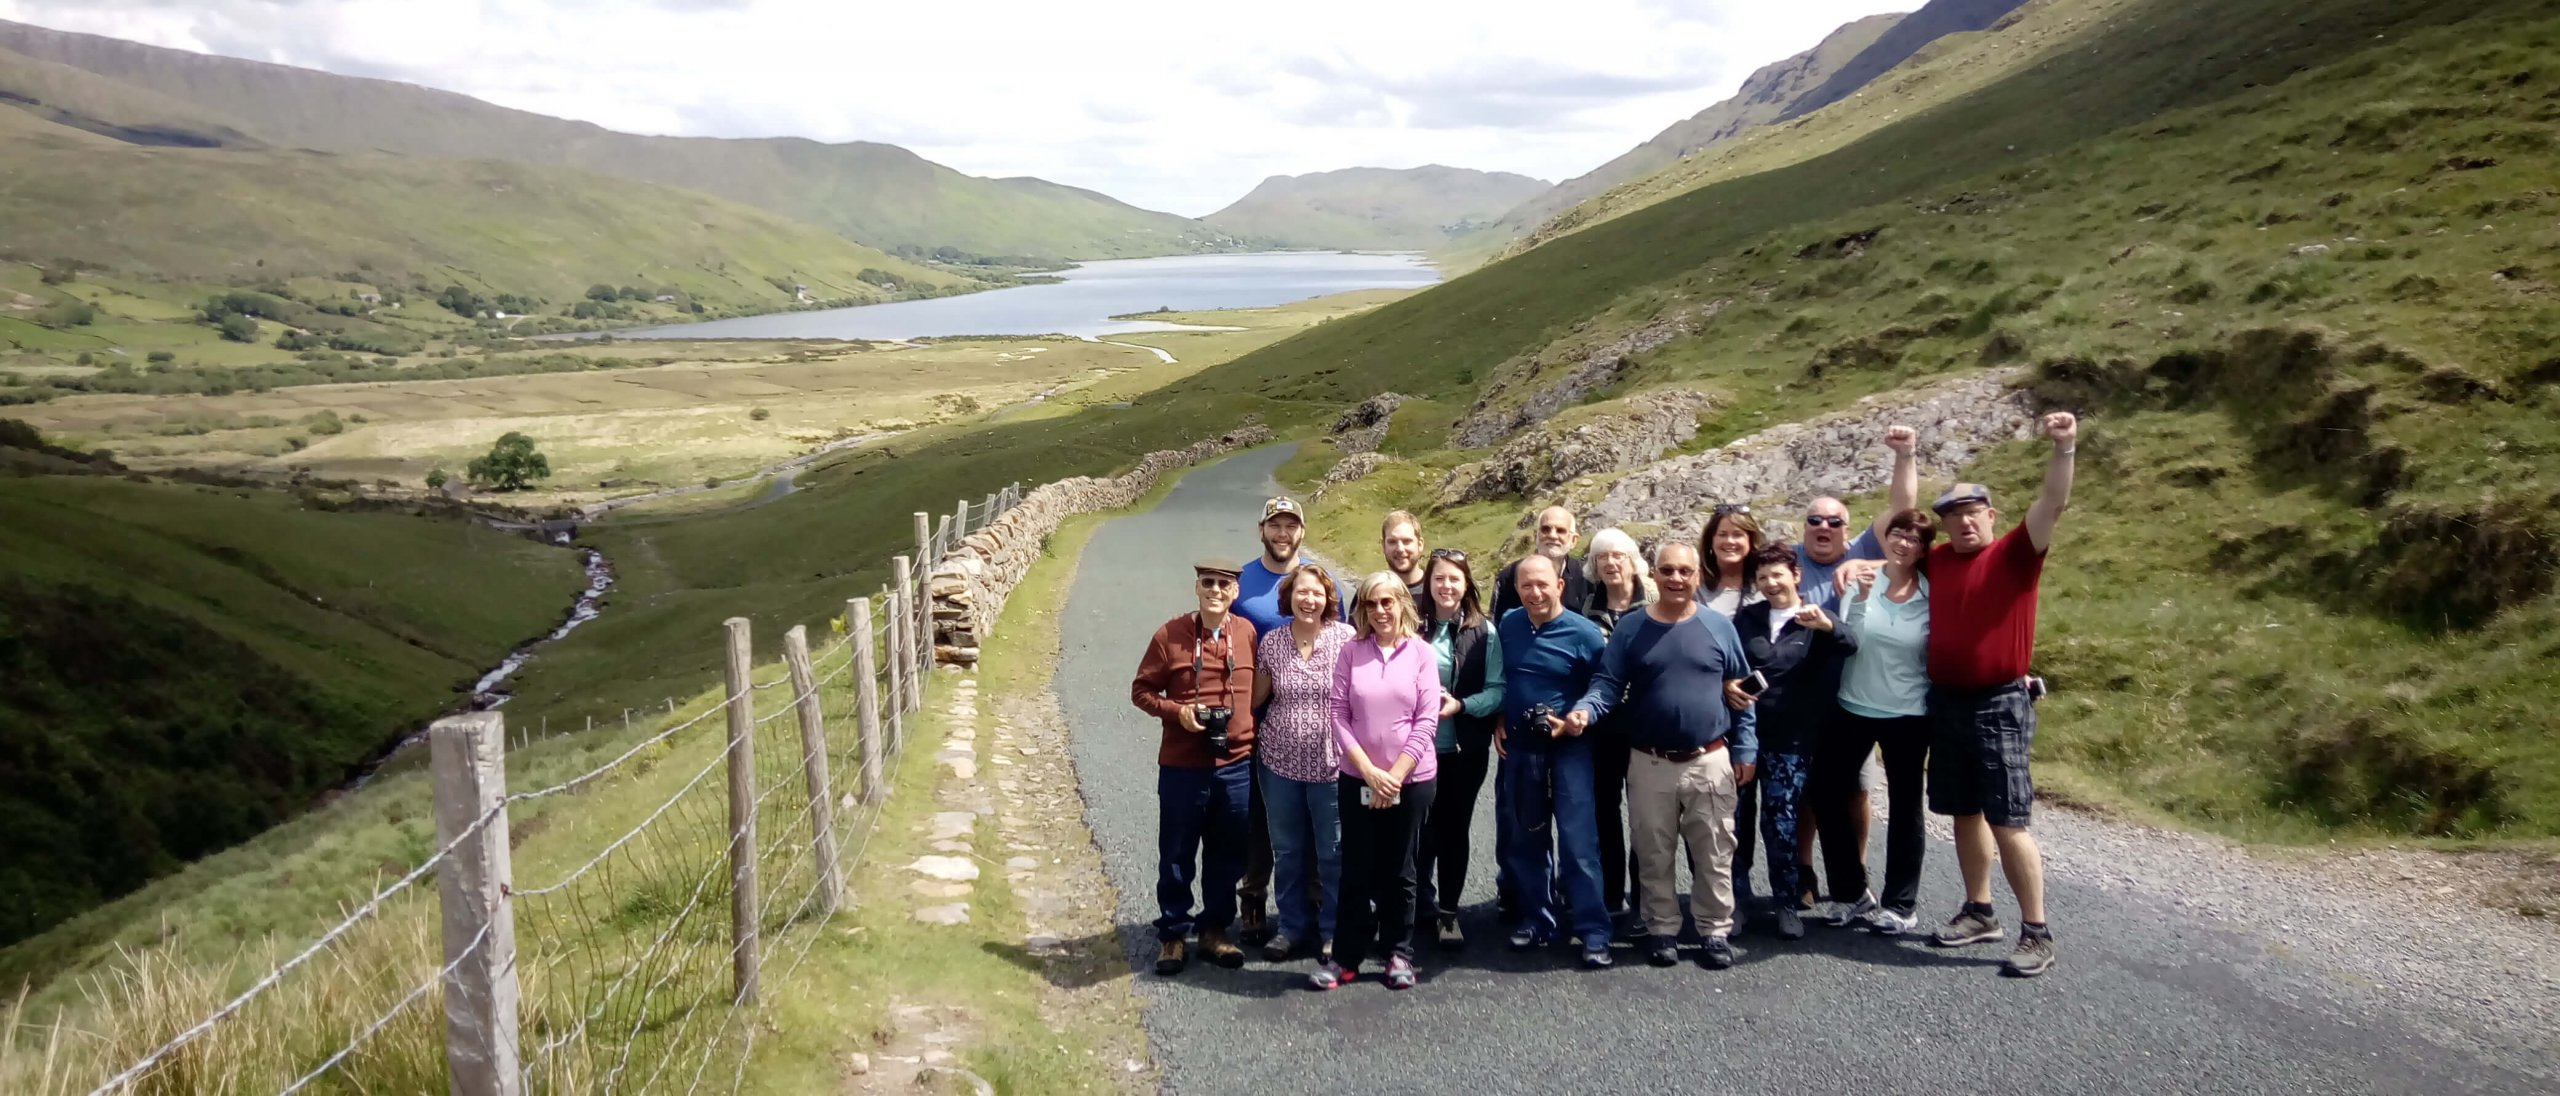 Happy tour group on the Healy Pass in Ireland